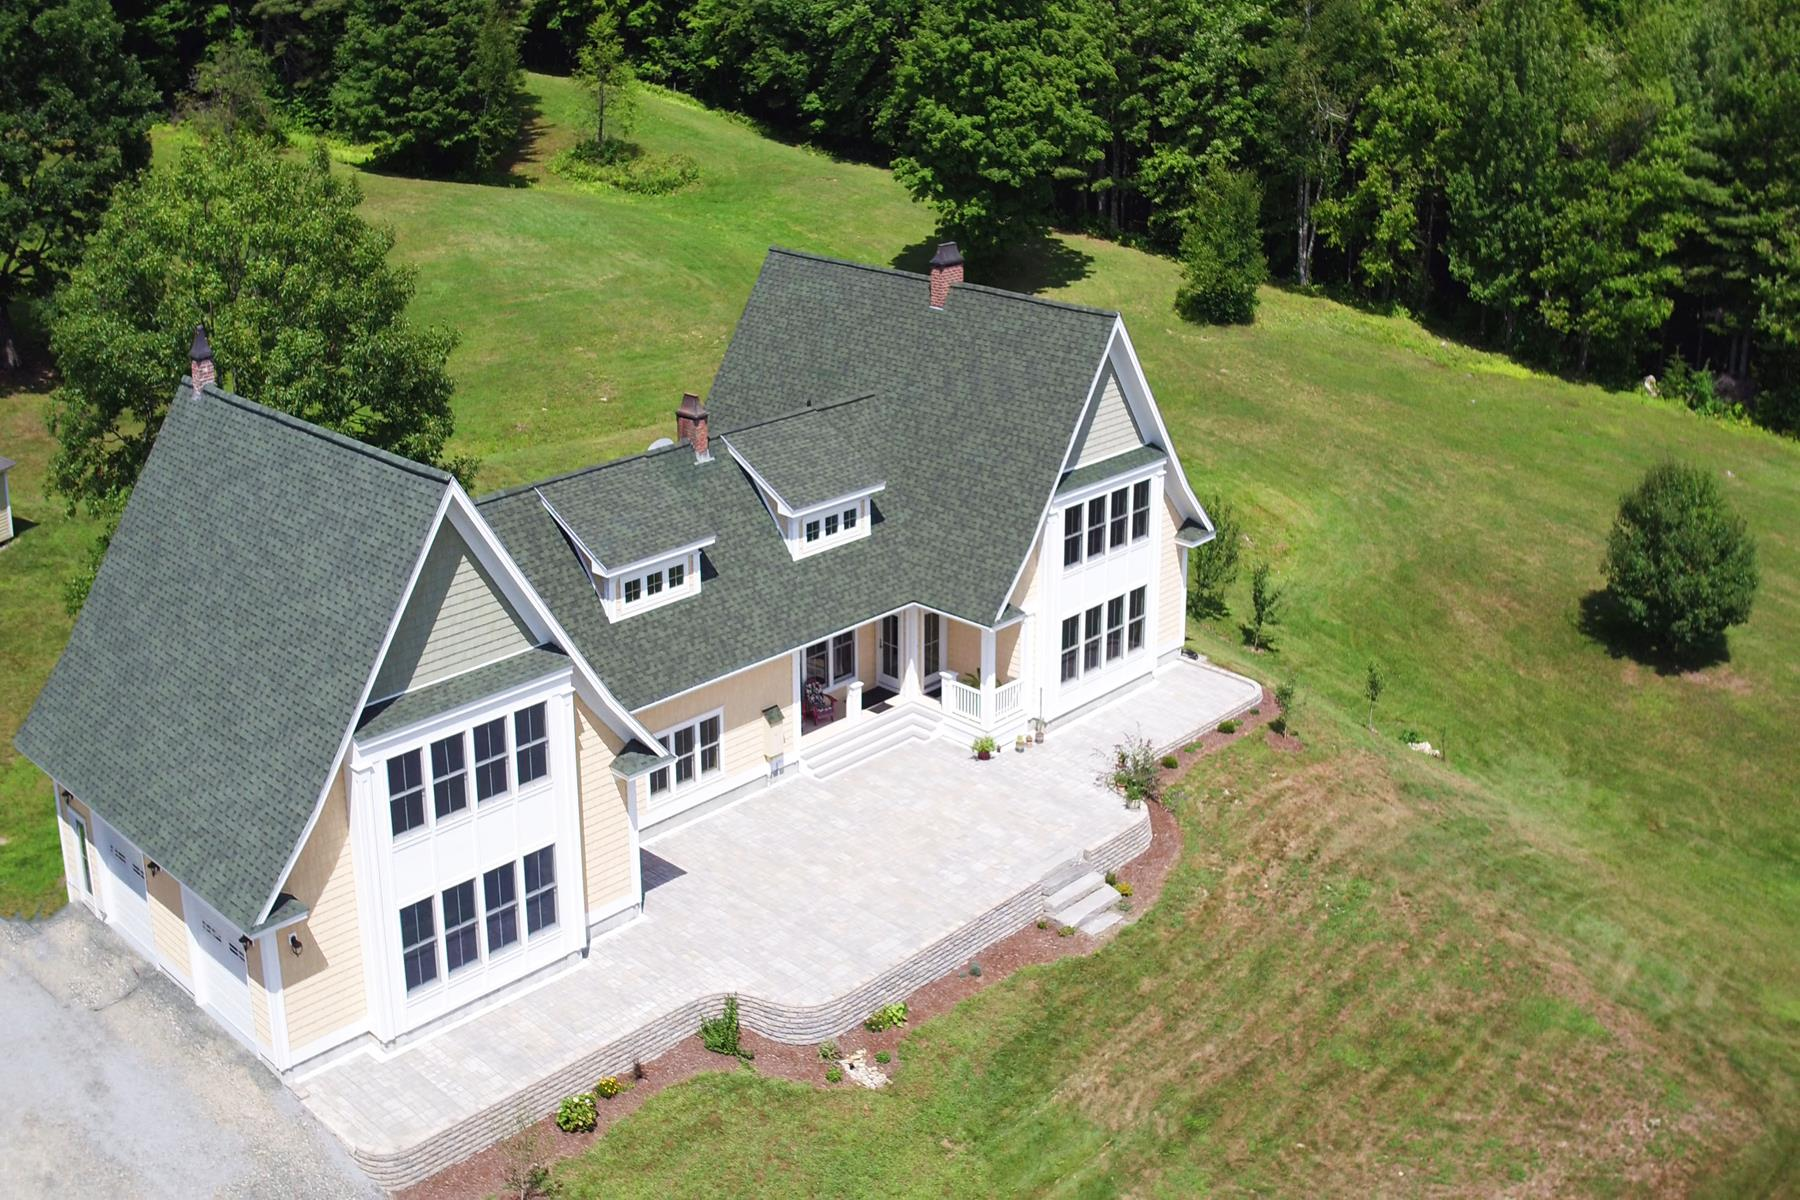 Villa per Vendita alle ore 226 Old North Rd, Wilmot Wilmot, New Hampshire, 03287 Stati Uniti